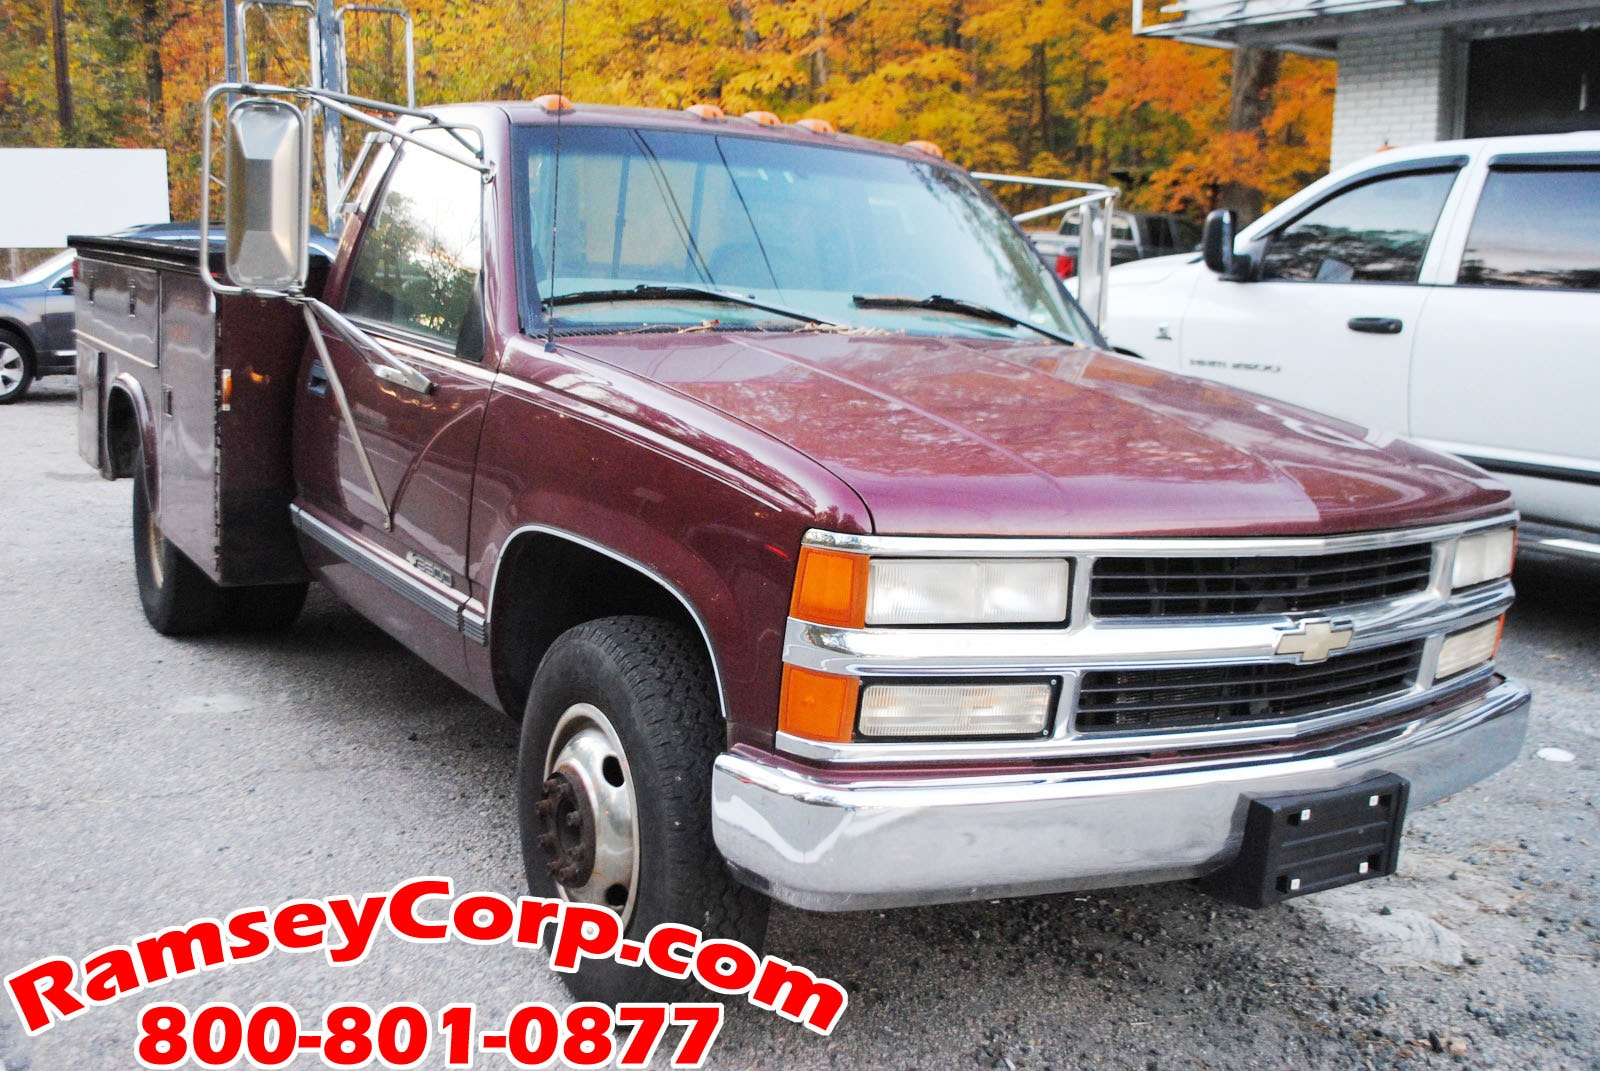 All Chevy chevy c3500 : Used 1999 Chevrolet C3500 Chassis For Sale   West Milford NJ